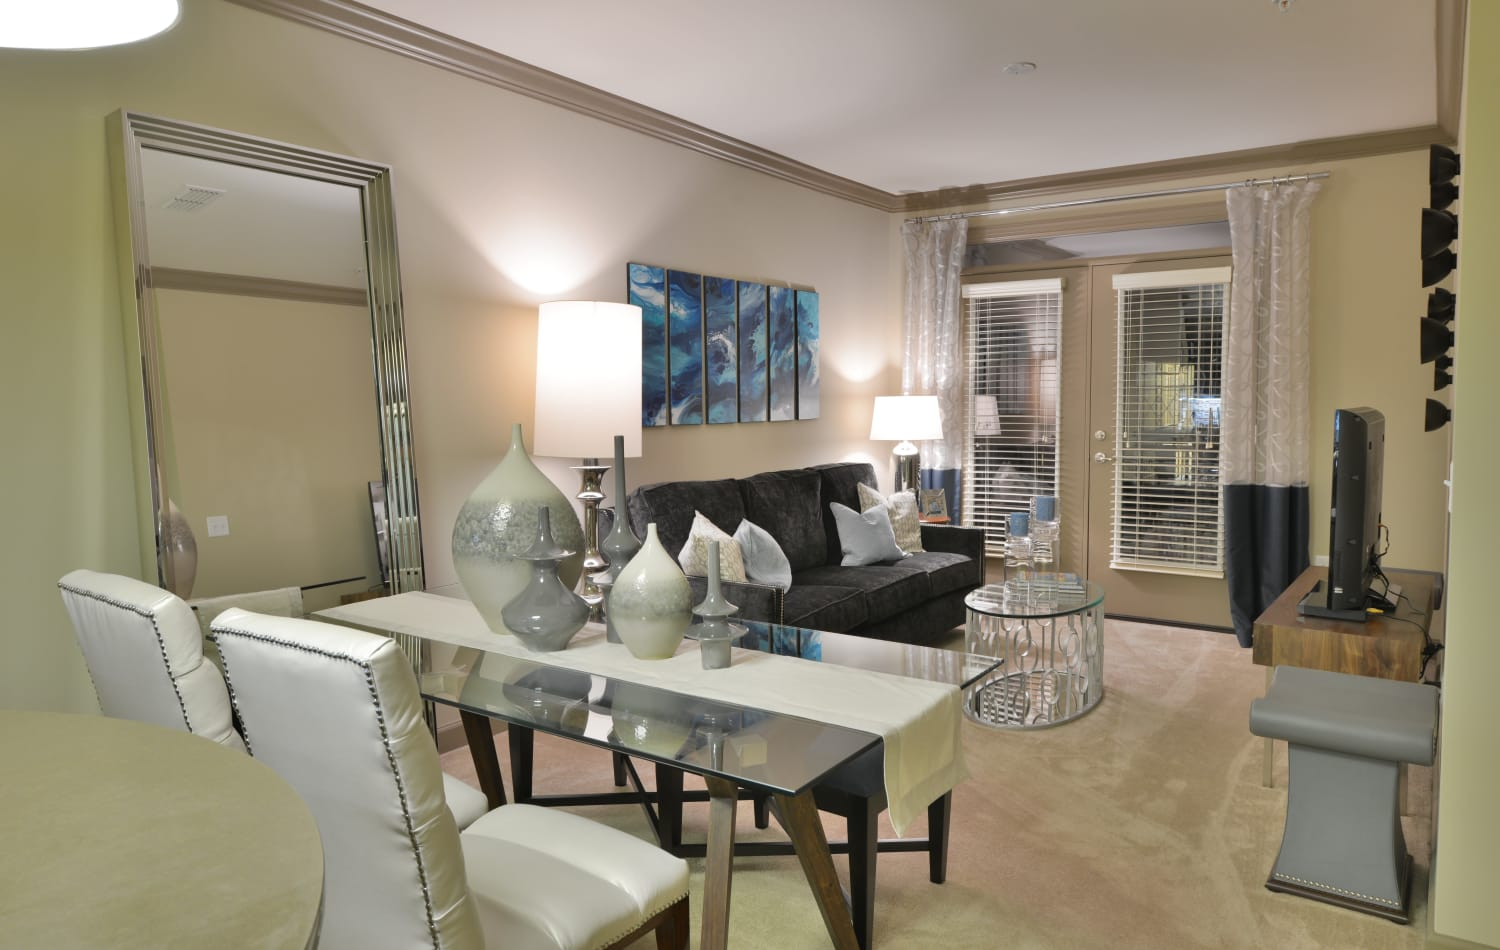 View of the dining area and living room in model home at Emory Point